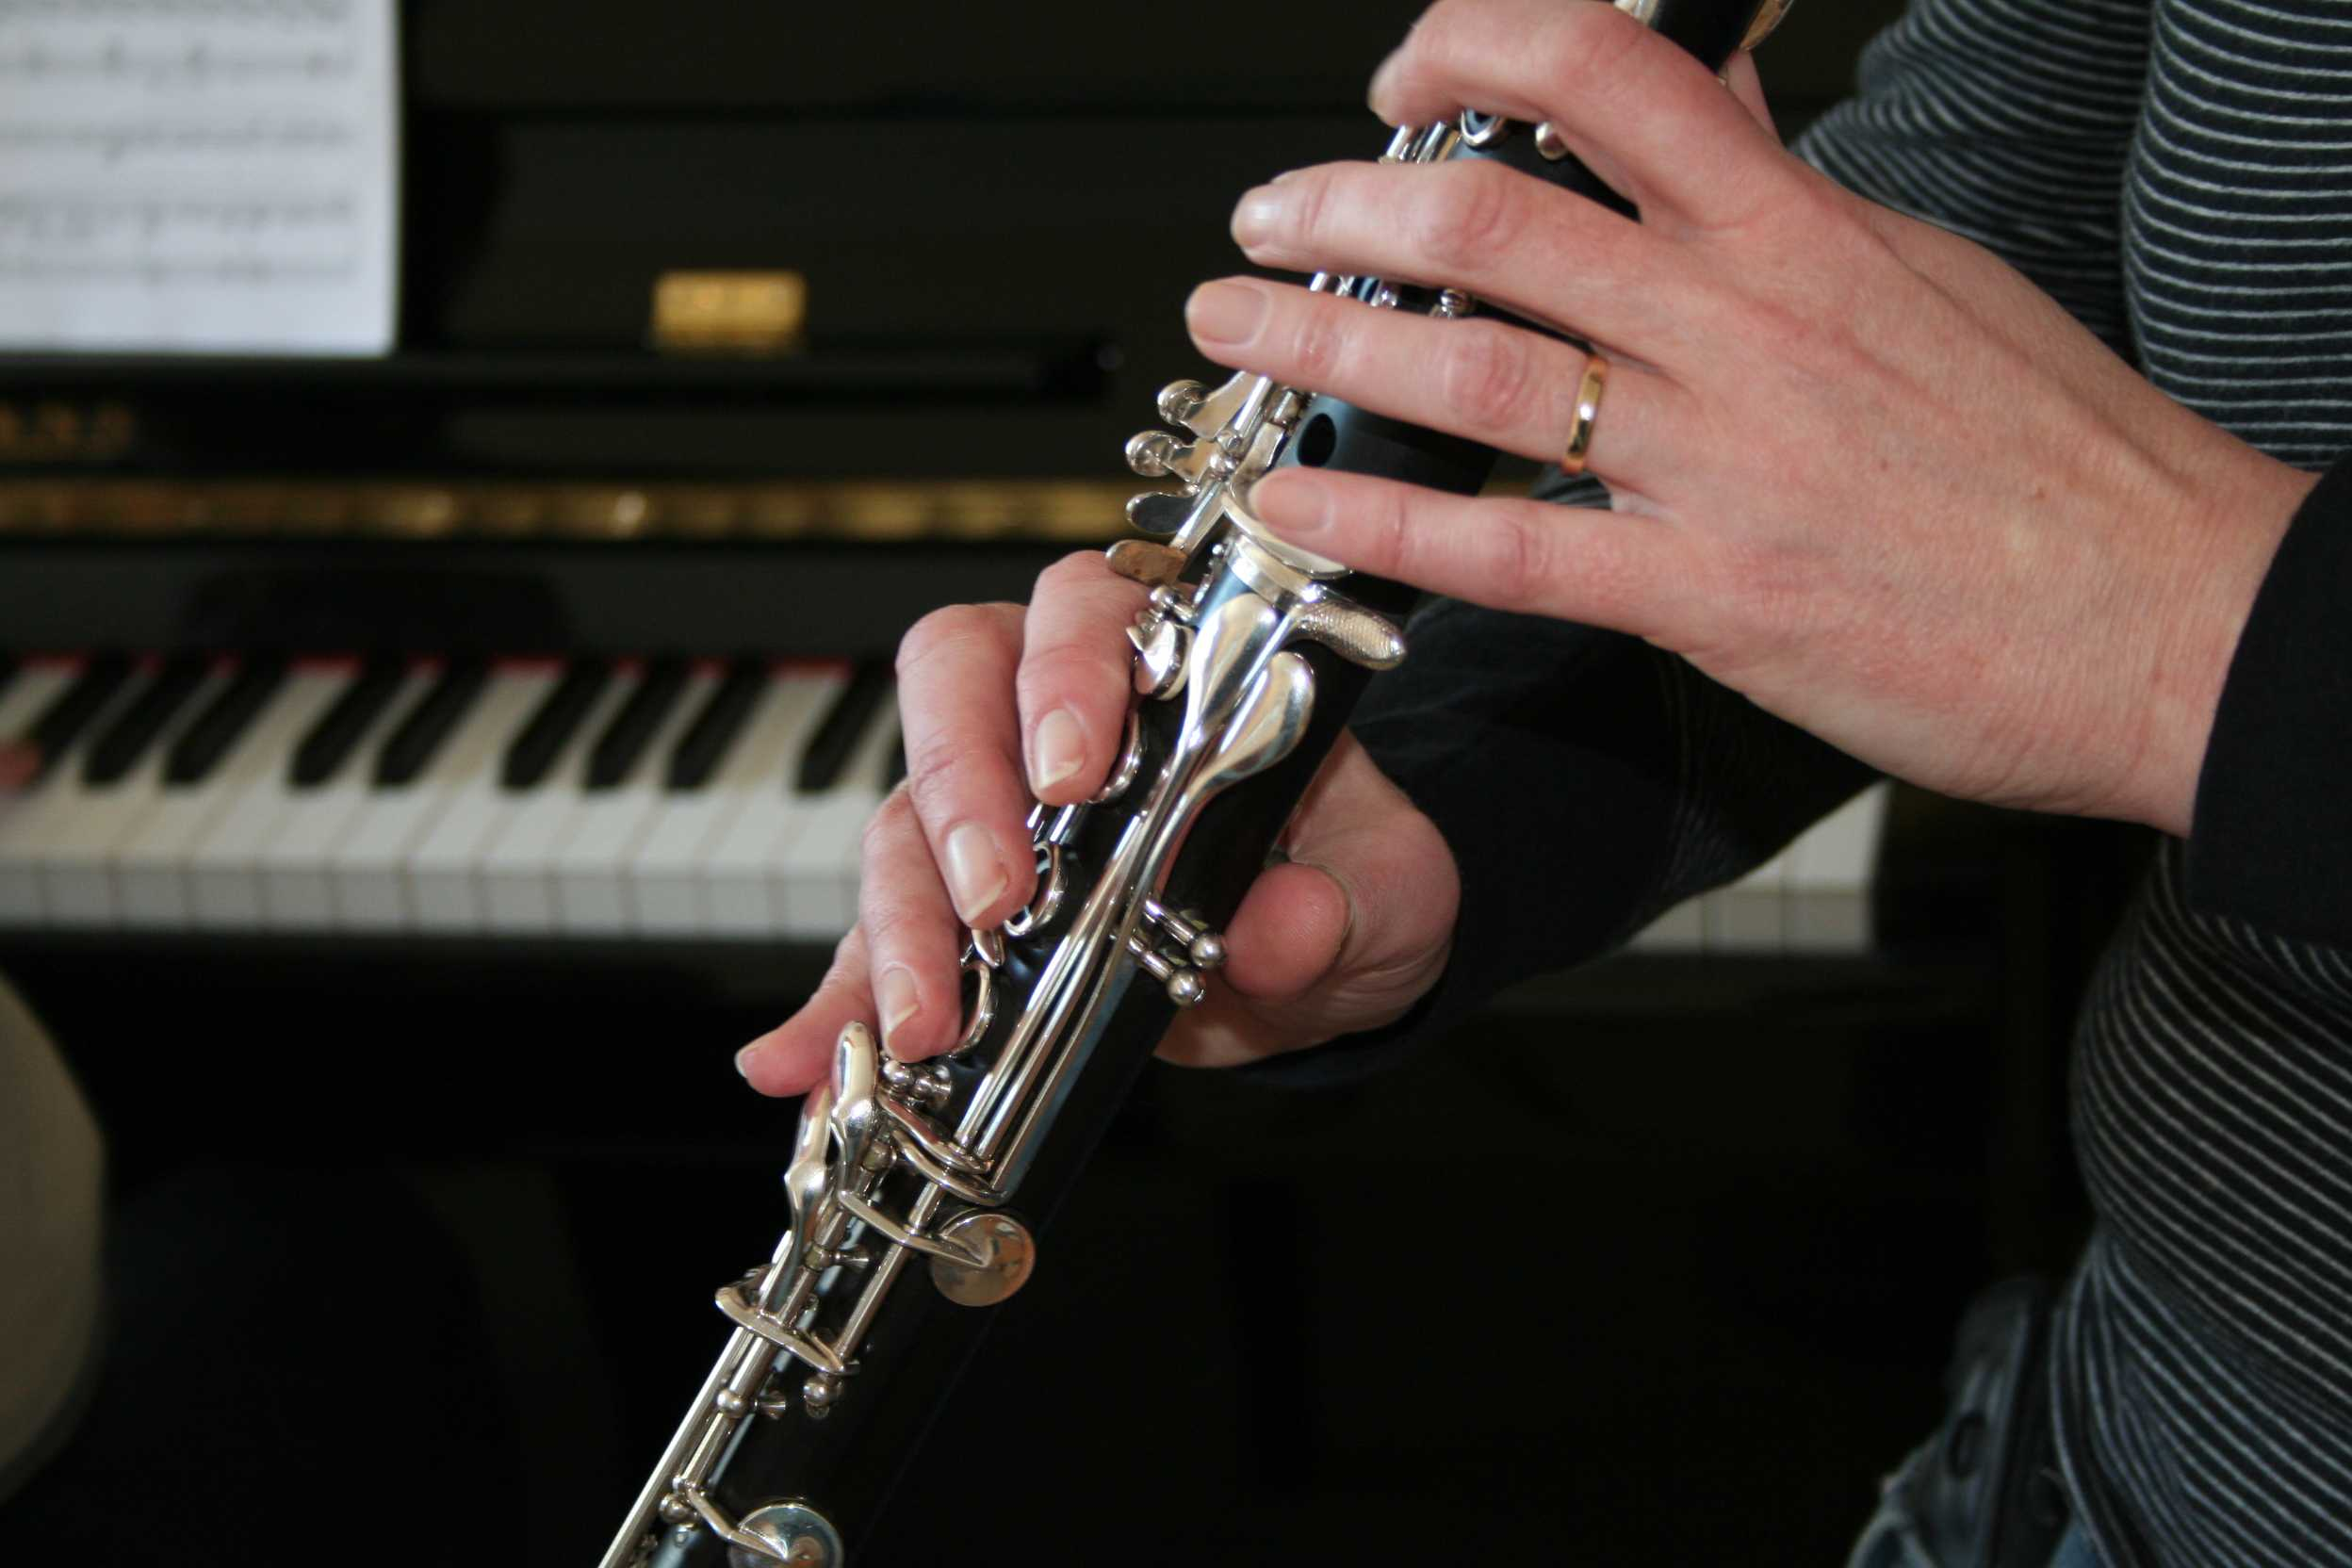 Clarinetist and pilates instructor to give lecture